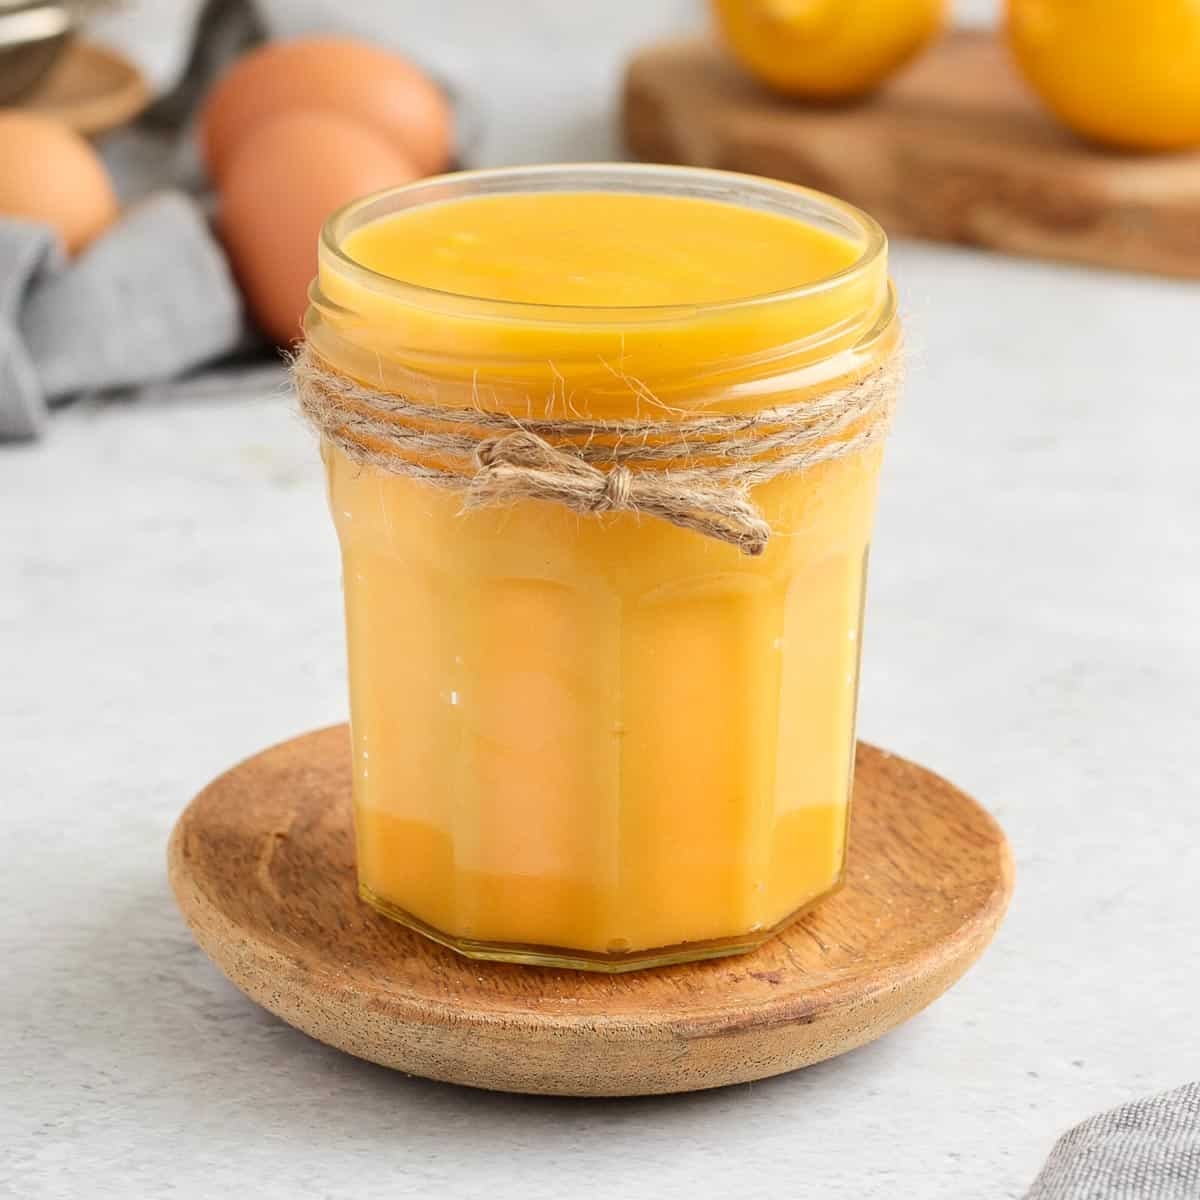 Lemon Curd in a glass jar over a small wooden plate.